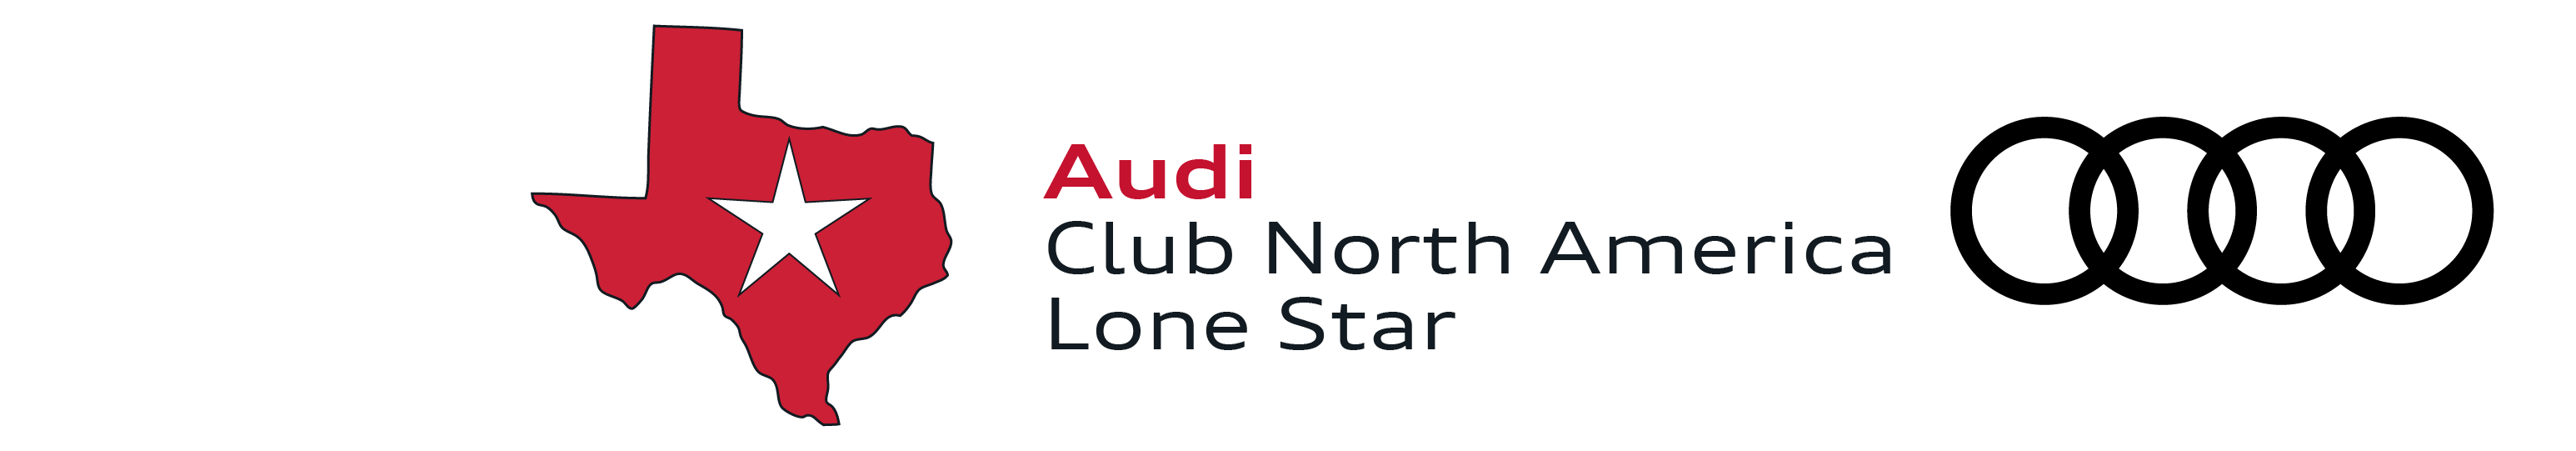 Lone Star Chapter – Audi Club of North America